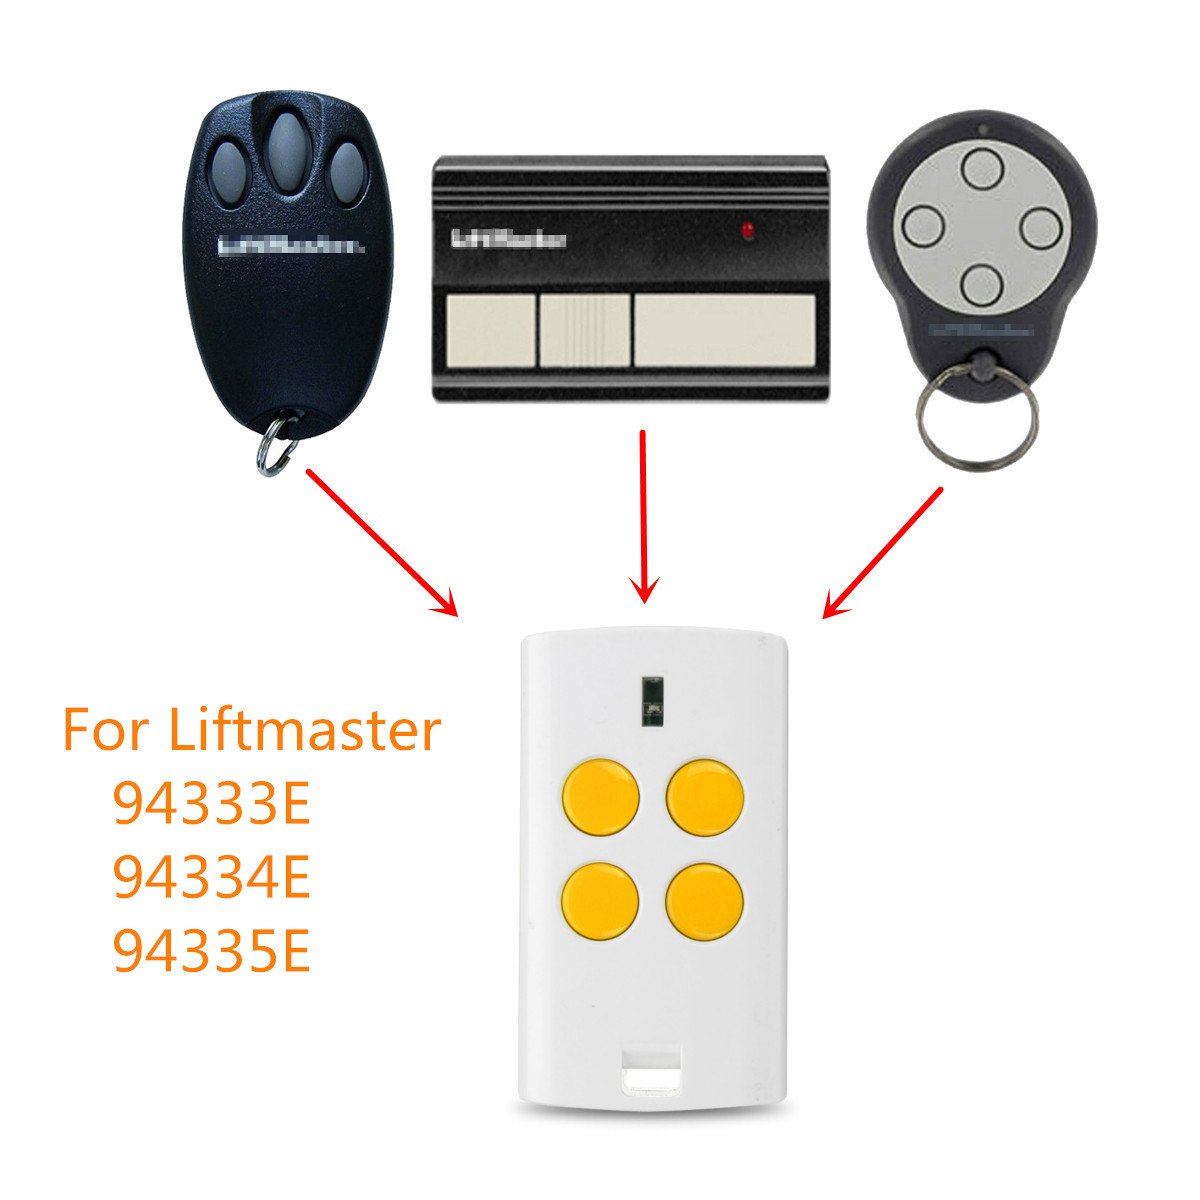 4 Button Universal Garage Gate Multi Remote Control Switch 280-868MHz Fits Fixed Rolling Code